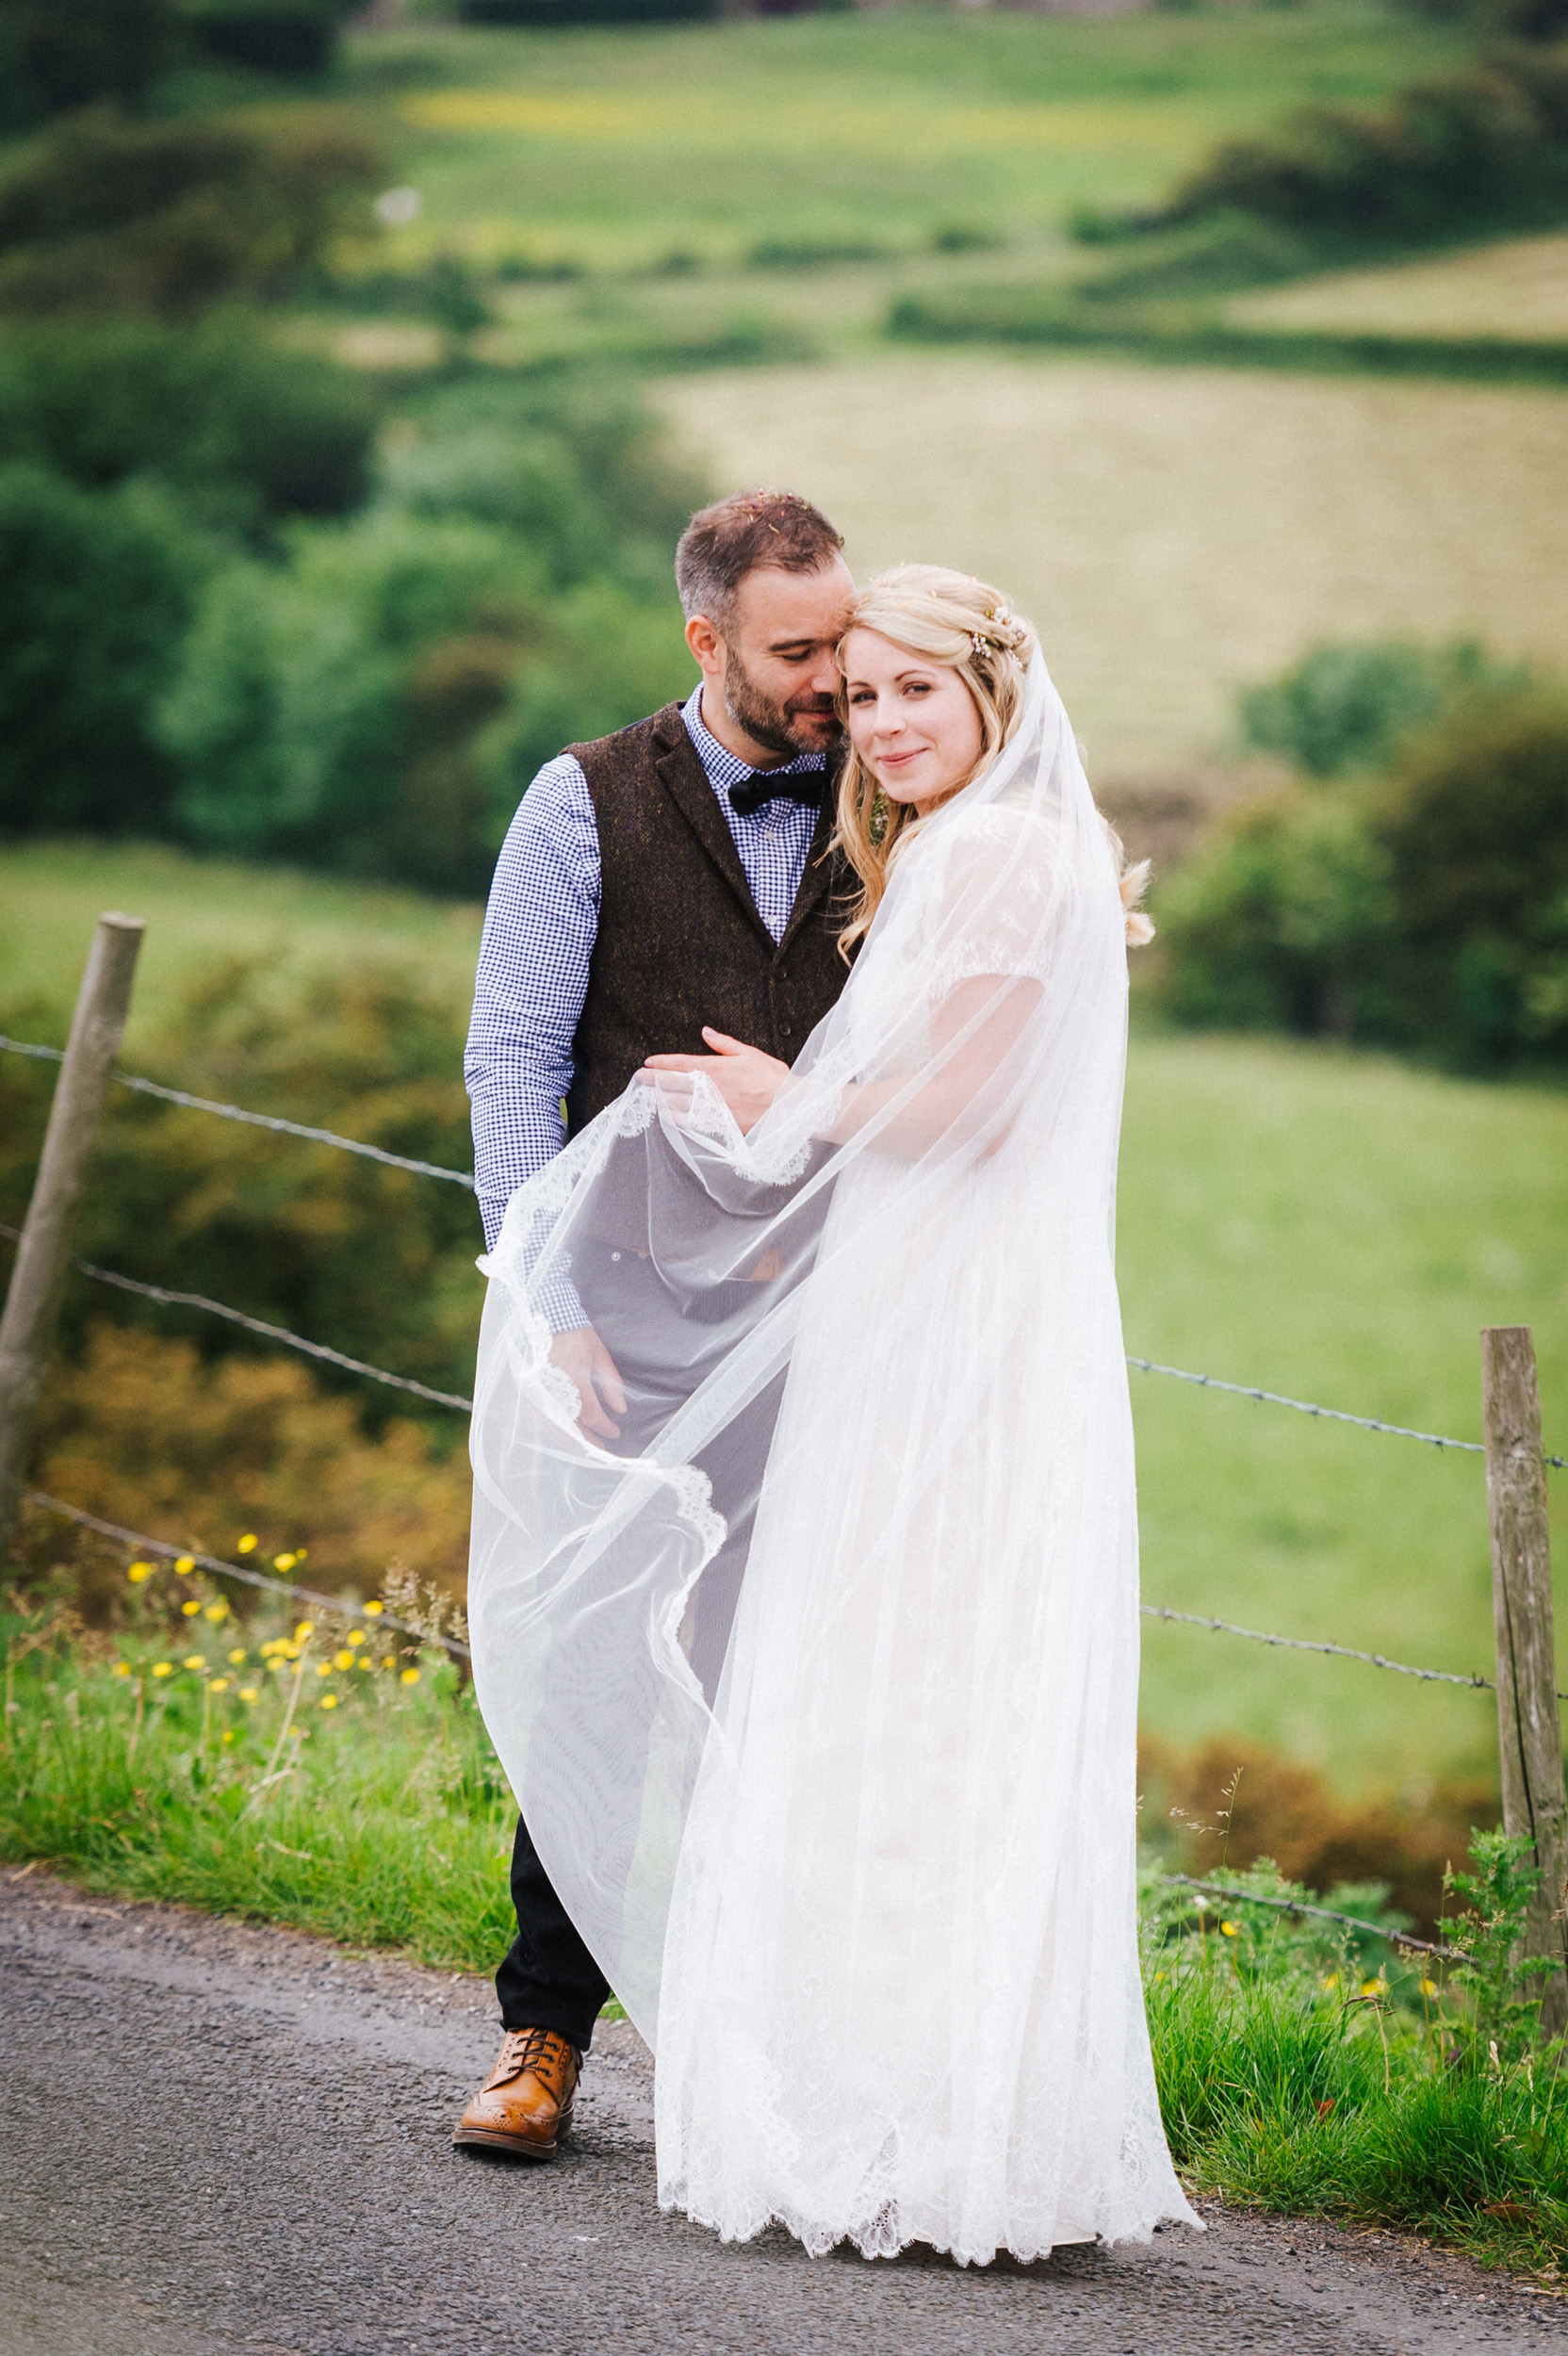 Lace-Wedding-Gown-Rustic-Barn-Wedding-Yorkshire-Kate-Beaumont-25.jpg